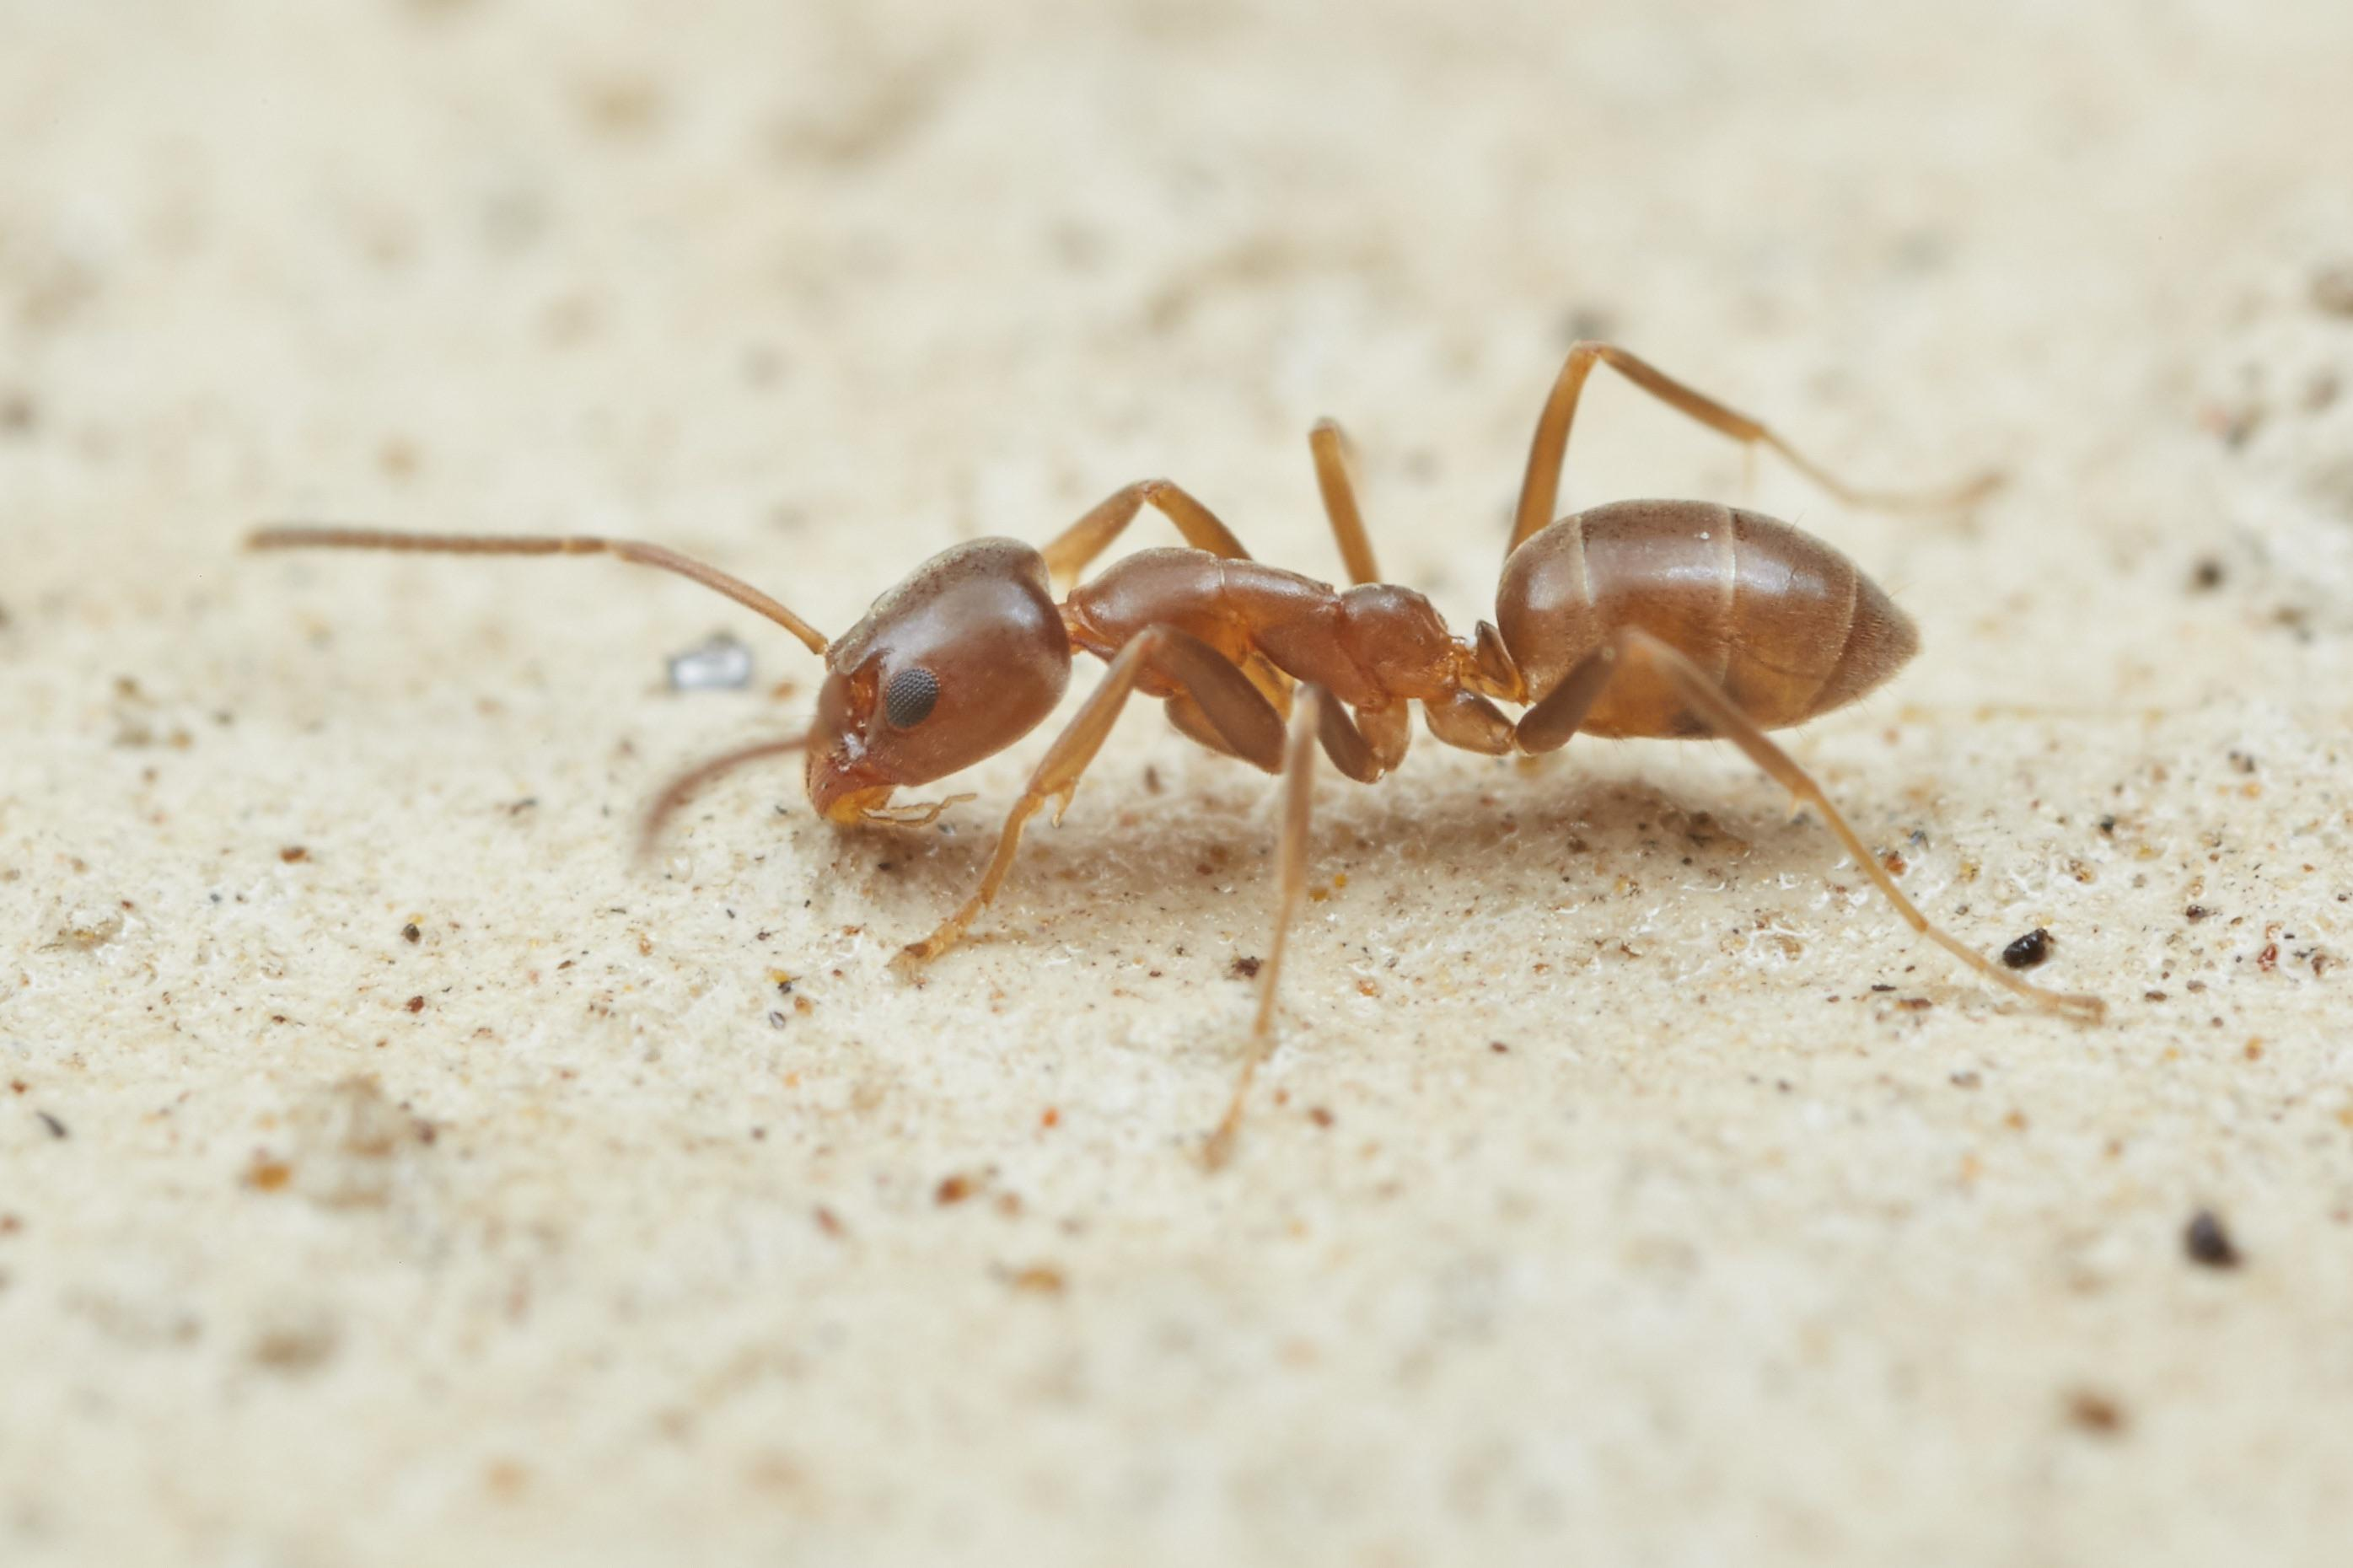 Nearly a century of data on ant interceptions at air and maritime ports in the United States and New Zealand was used in an analysis of global invasive species introduction, spread and subsequent invasion. Photo shows an Argentine ant, photo credit: www.AntWeb.org